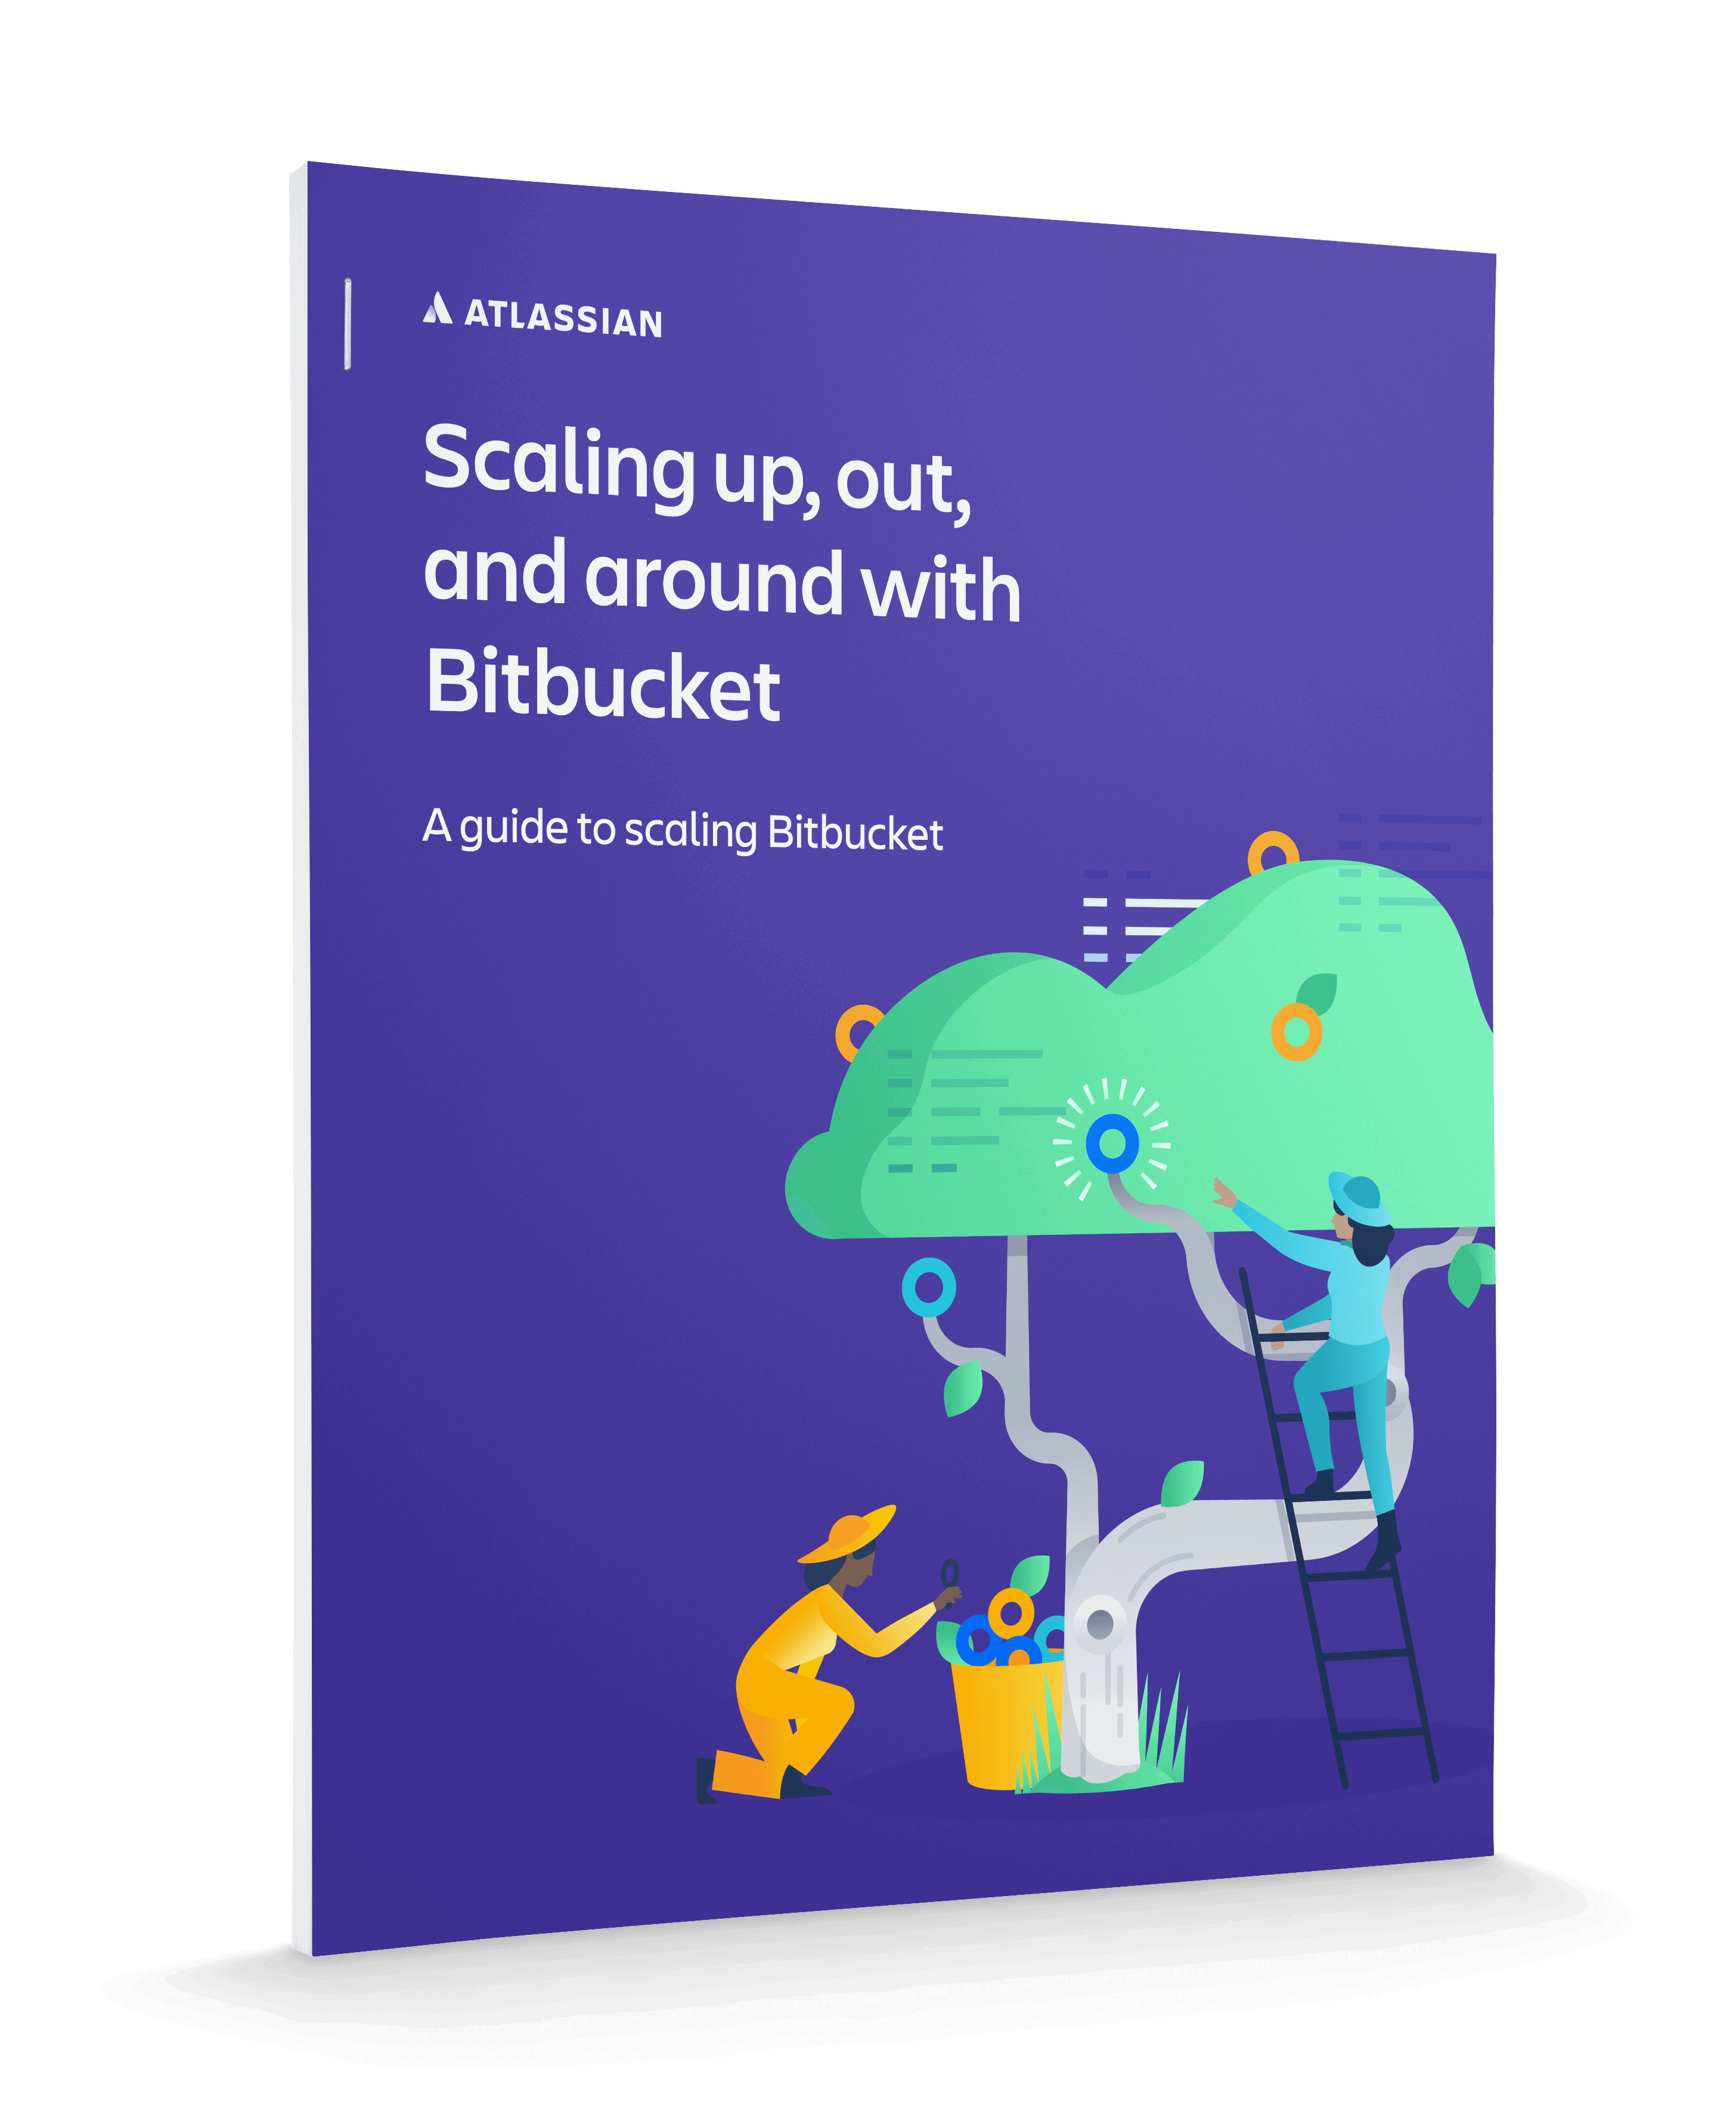 Scaling up, out and around with Bitbucket Data Center cover